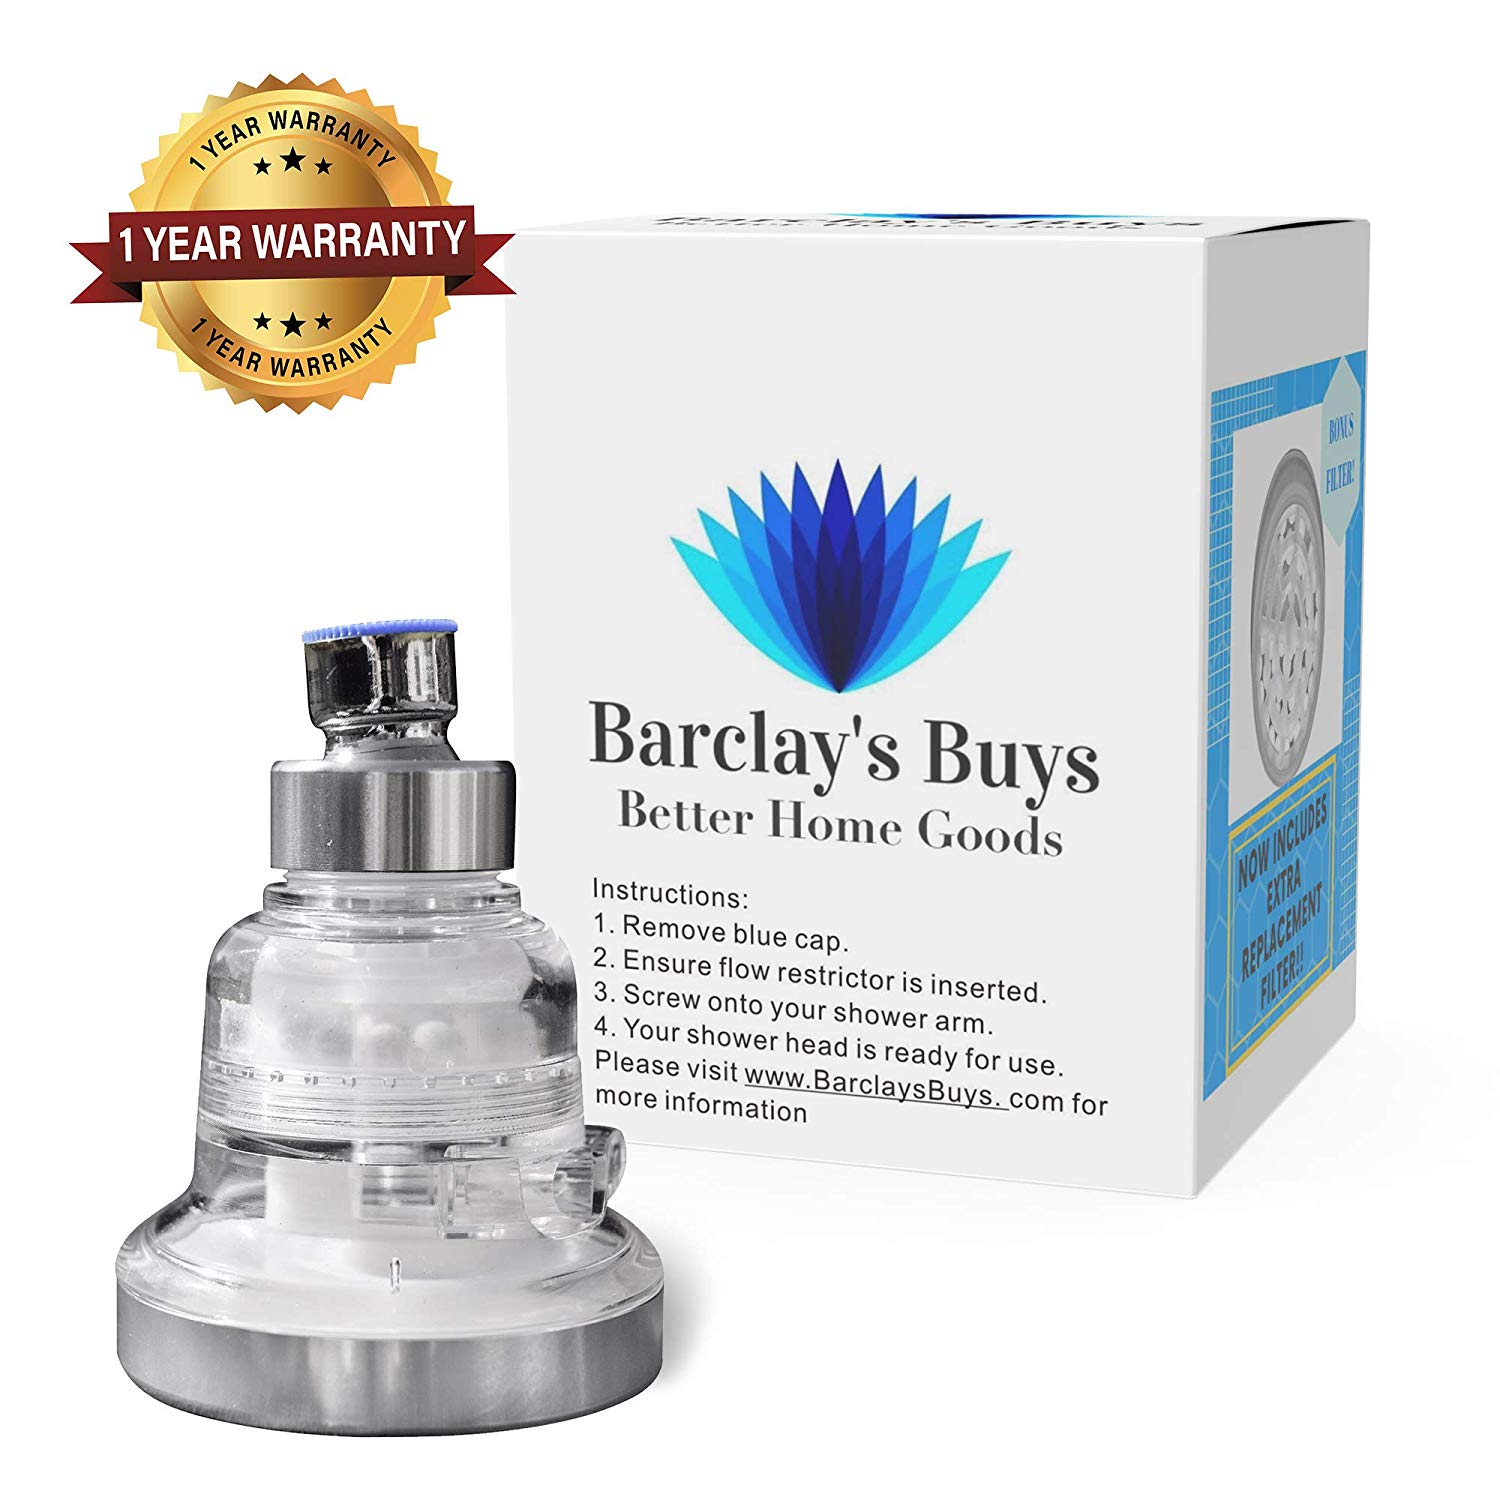 Barclay's Buys Filtered Showerhead